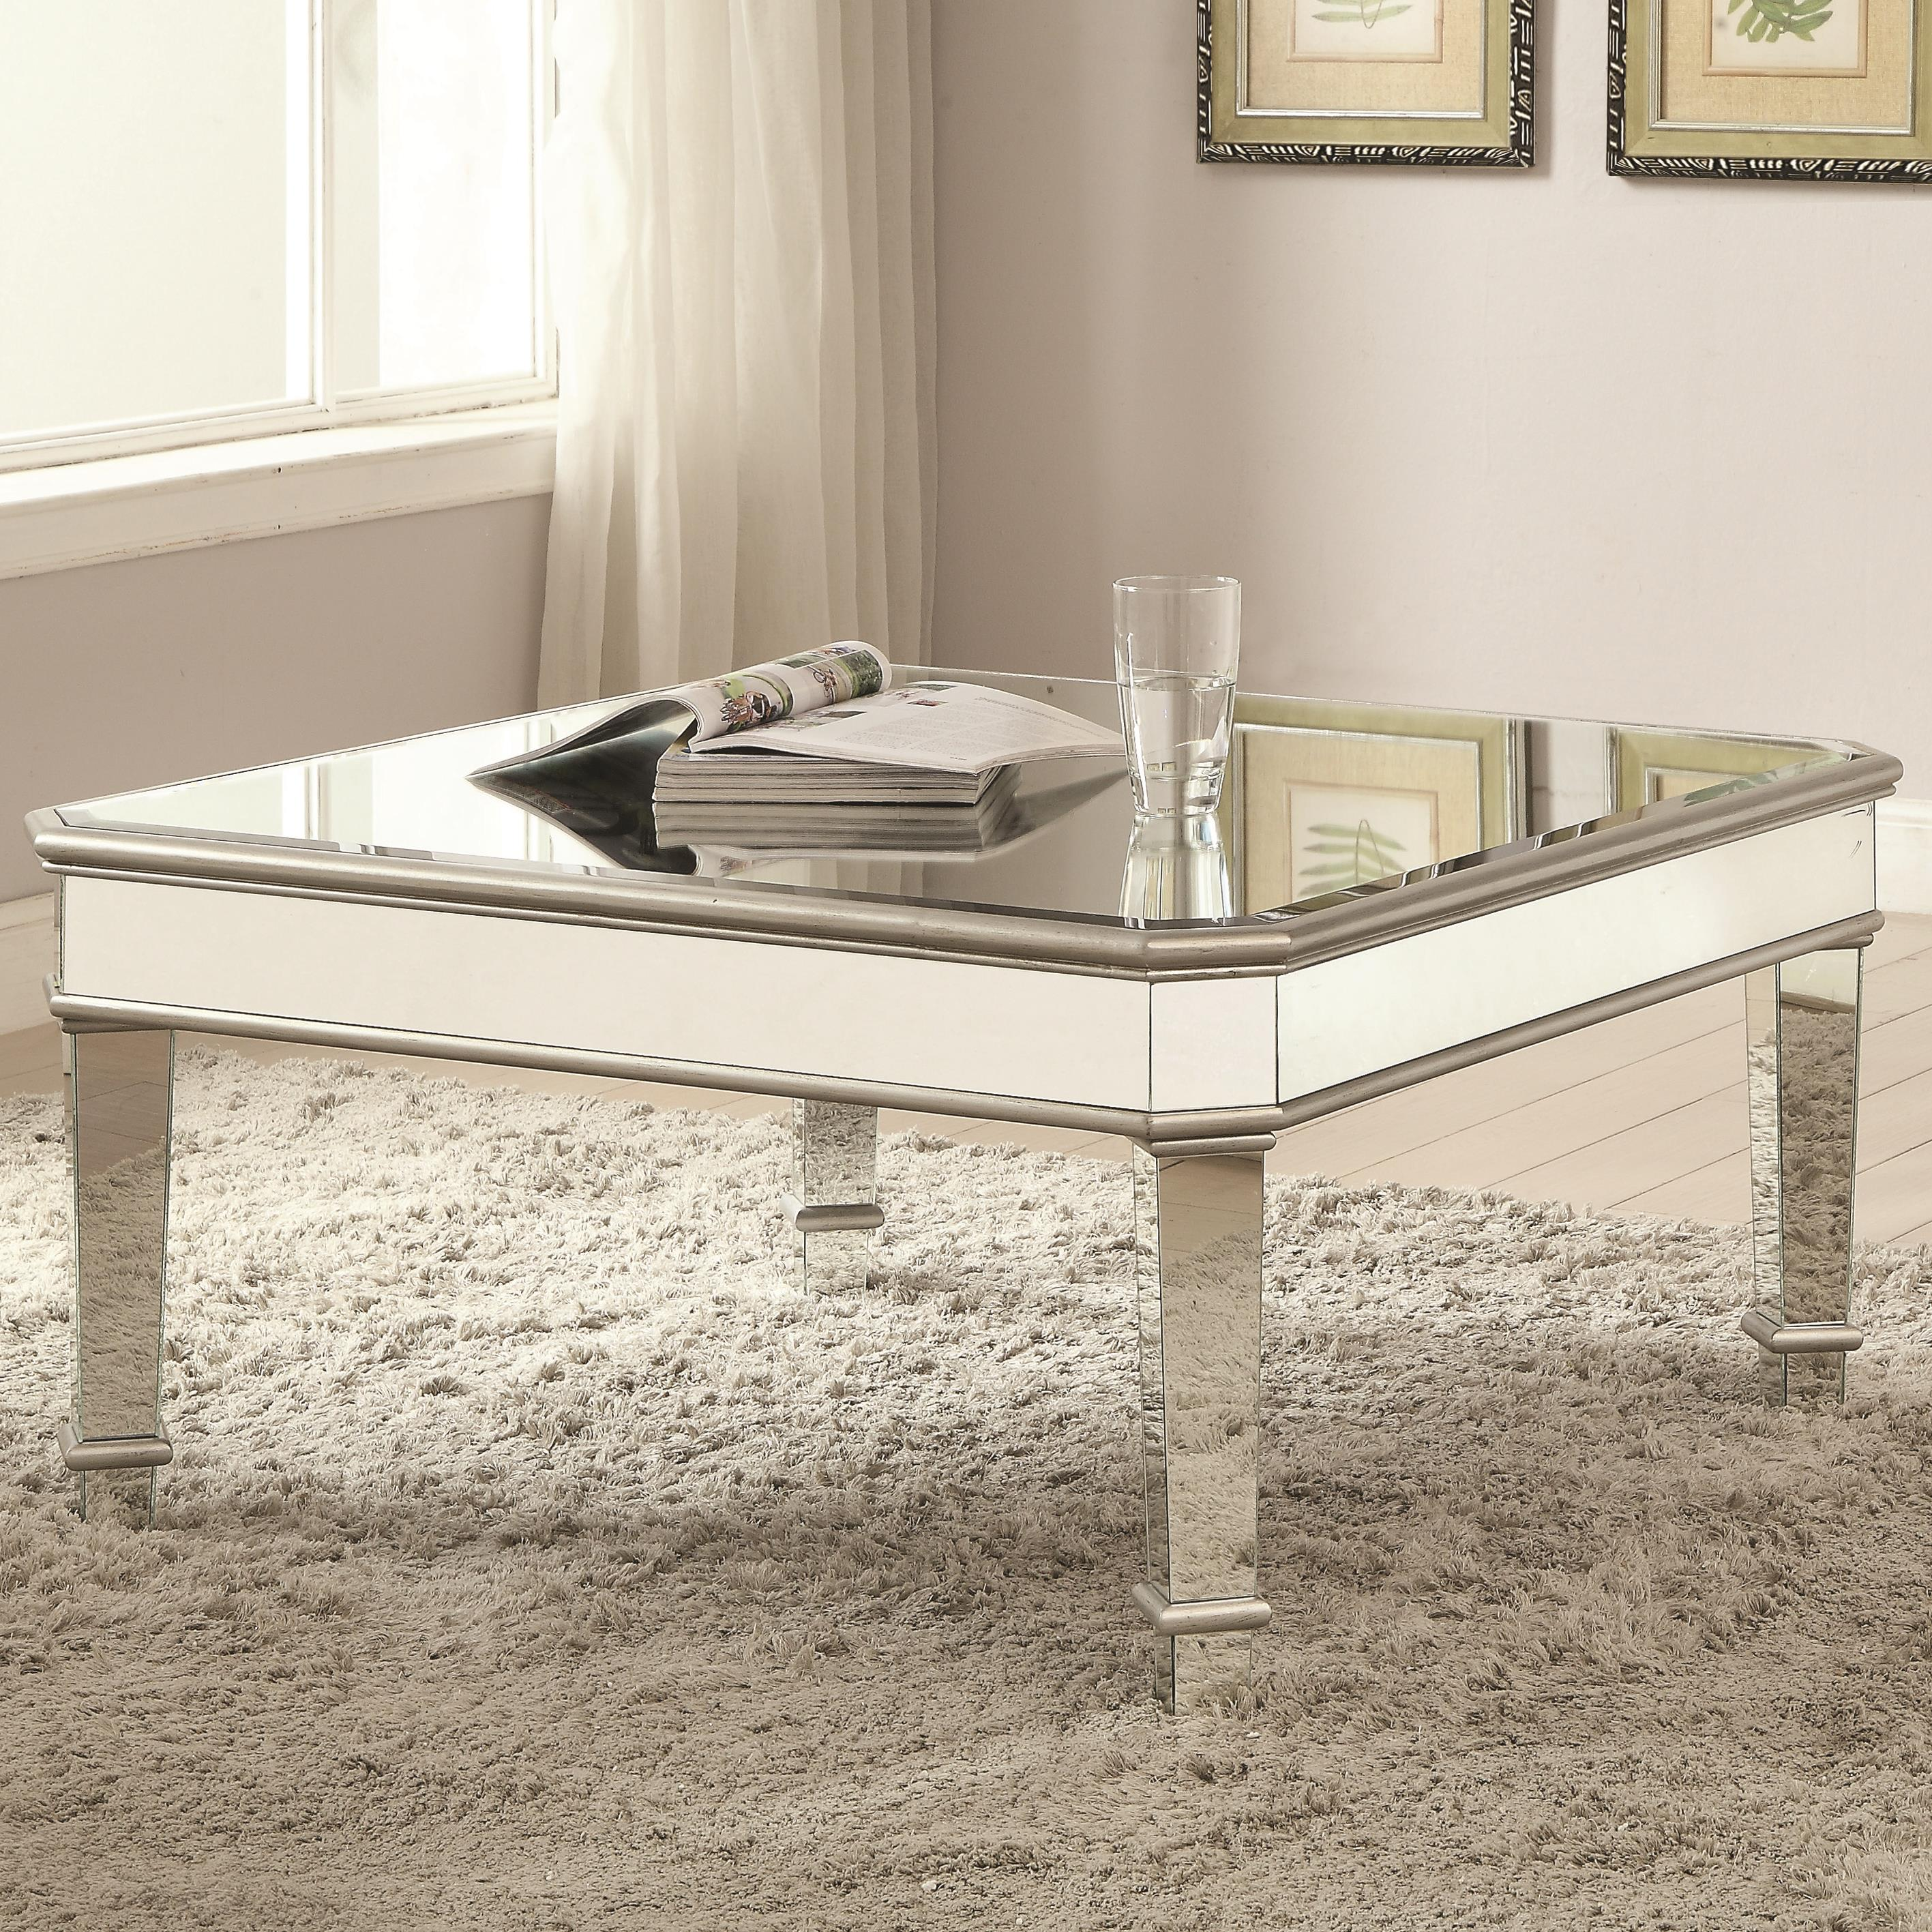 703938 mirrored coffee table